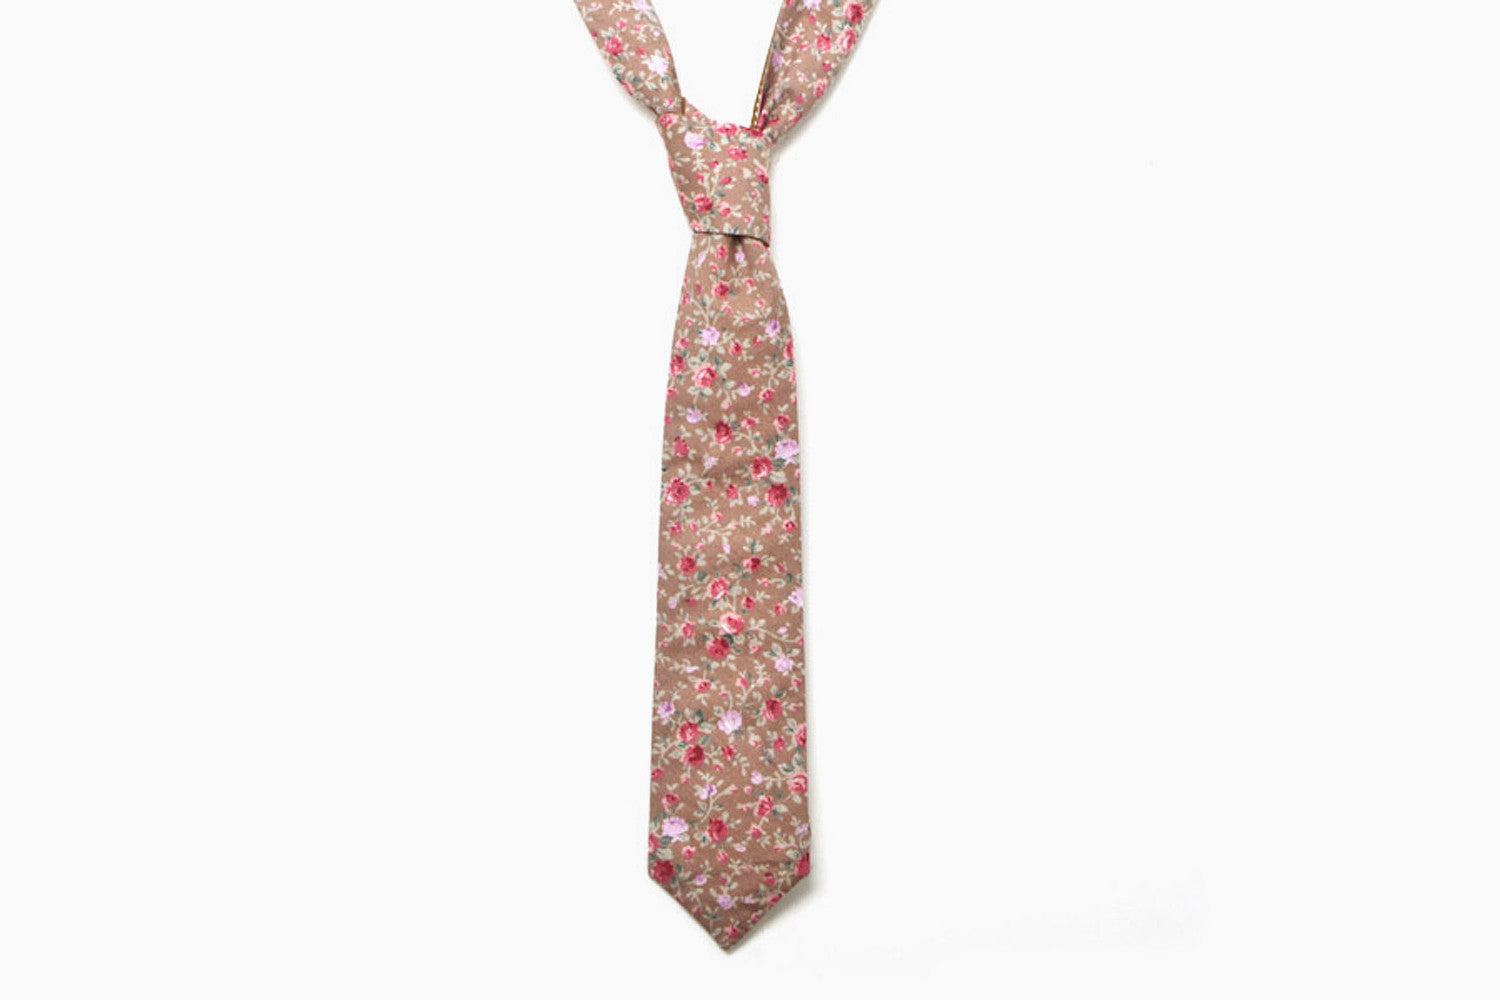 Hugh Reversible Neck Tie (Taupe/Tawny)